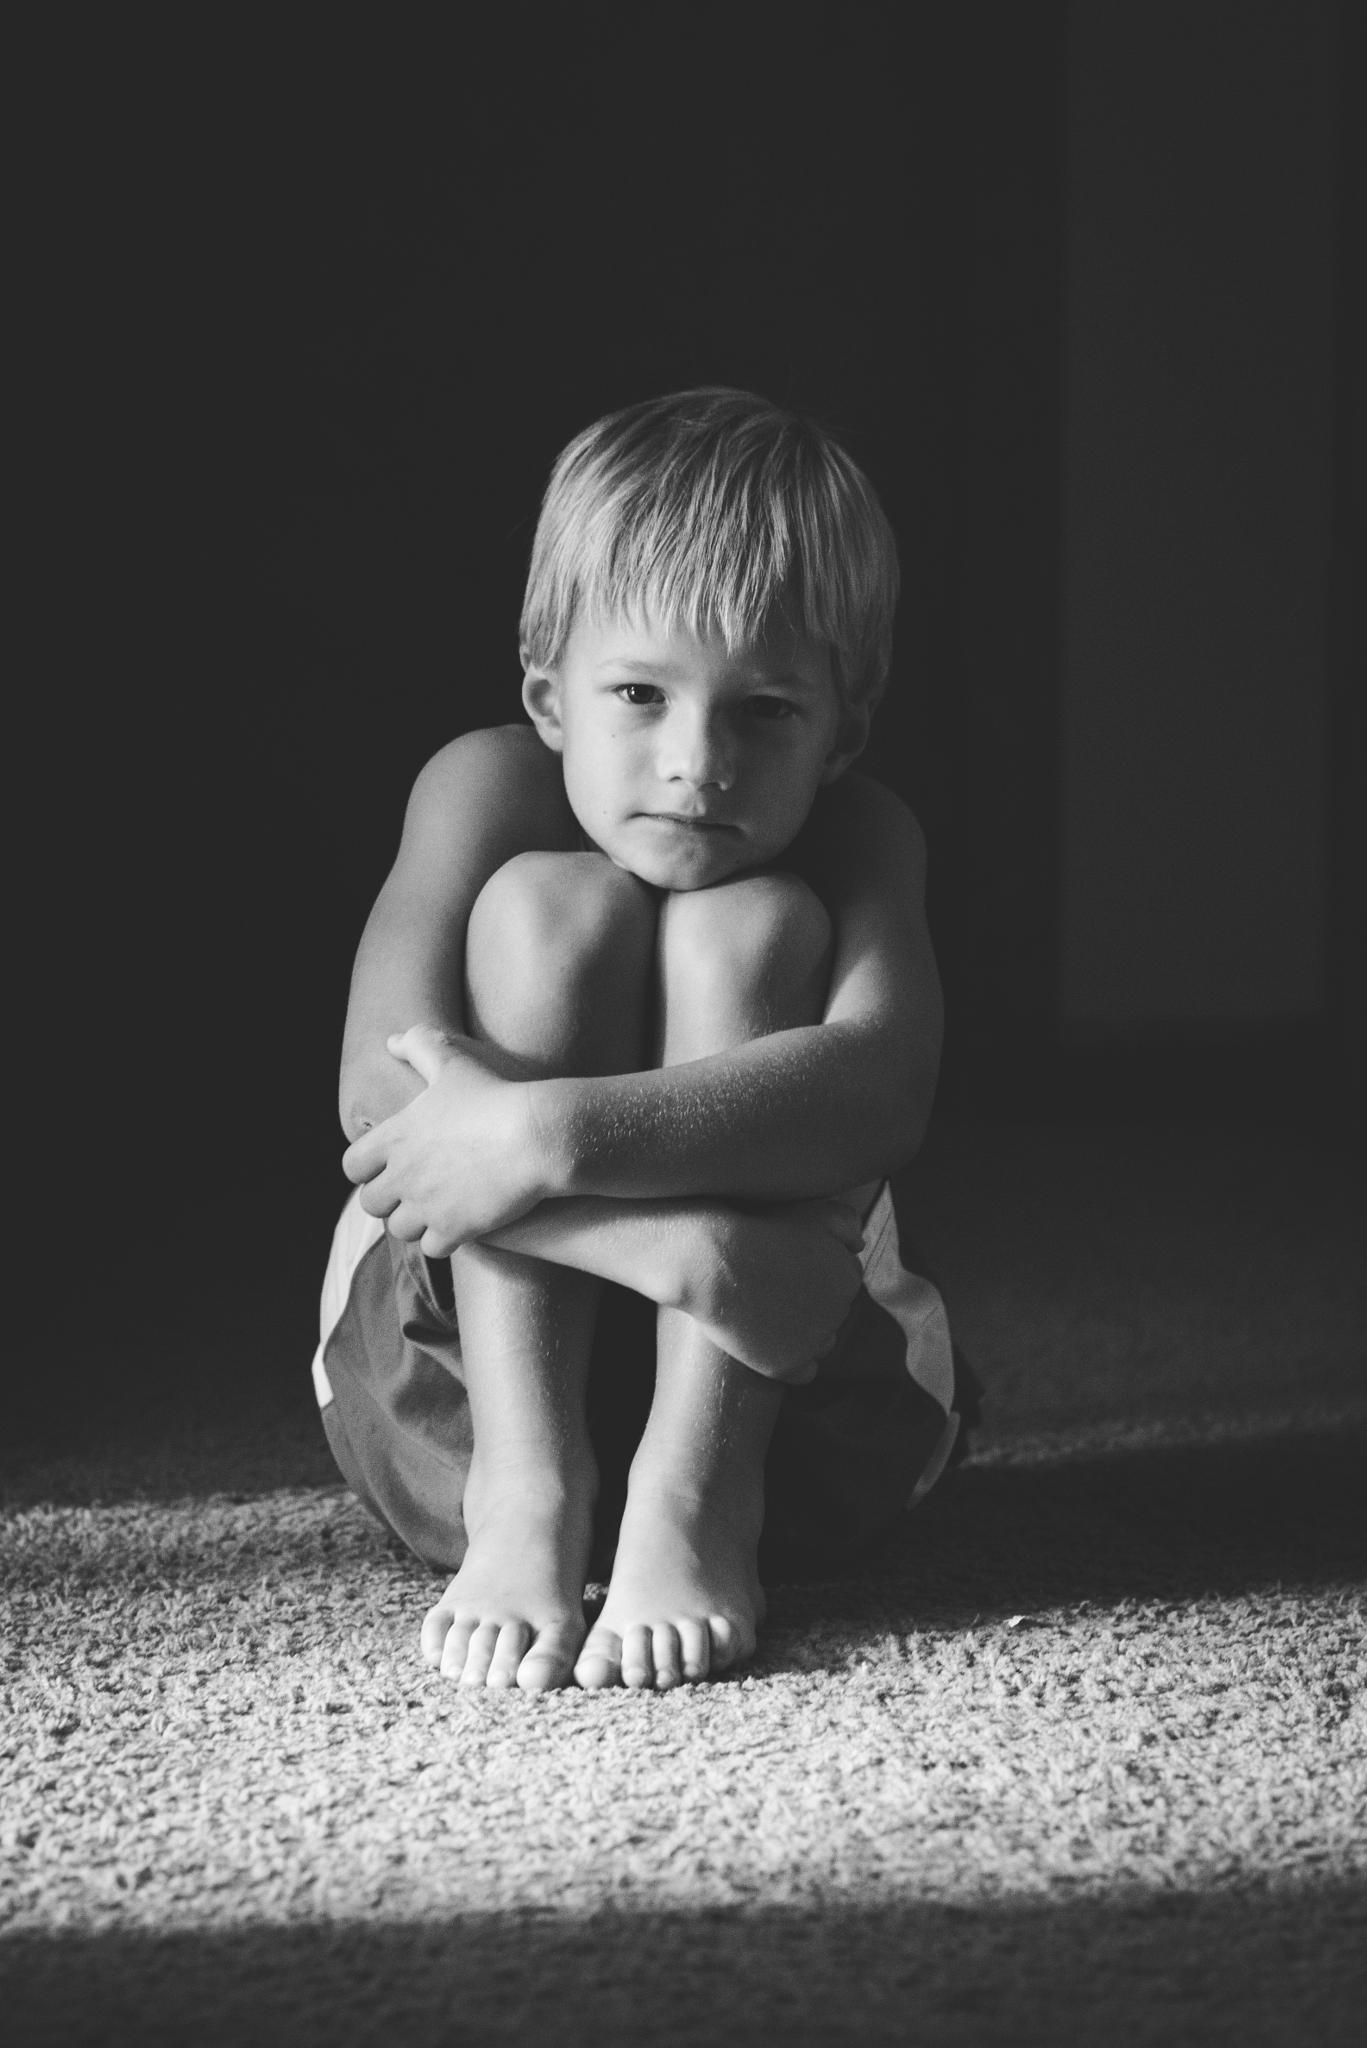 A Boy by Michelle Peterson